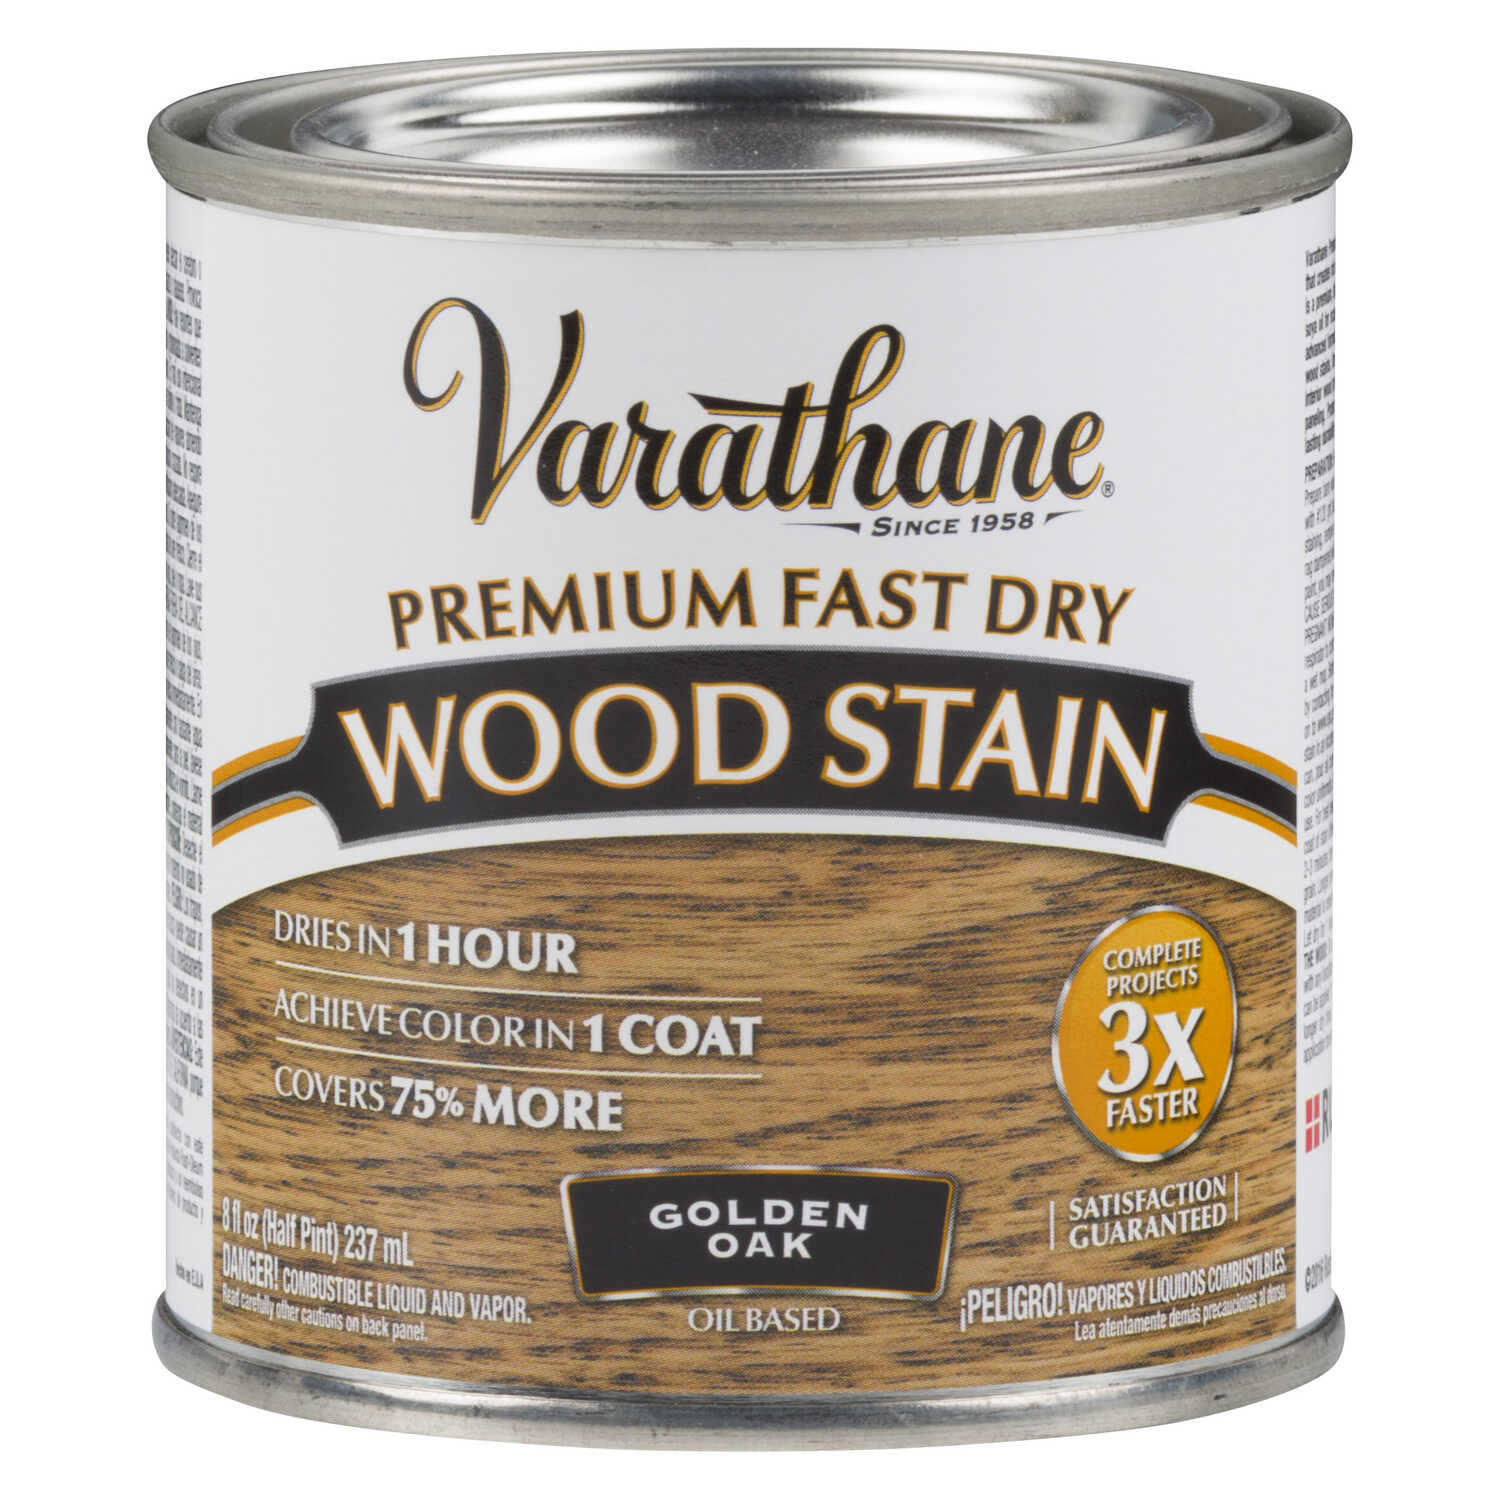 Varathane  Premium Fast Dry  Semi-Transparent  Golden Oak  Wood Stain  0.5 pt.